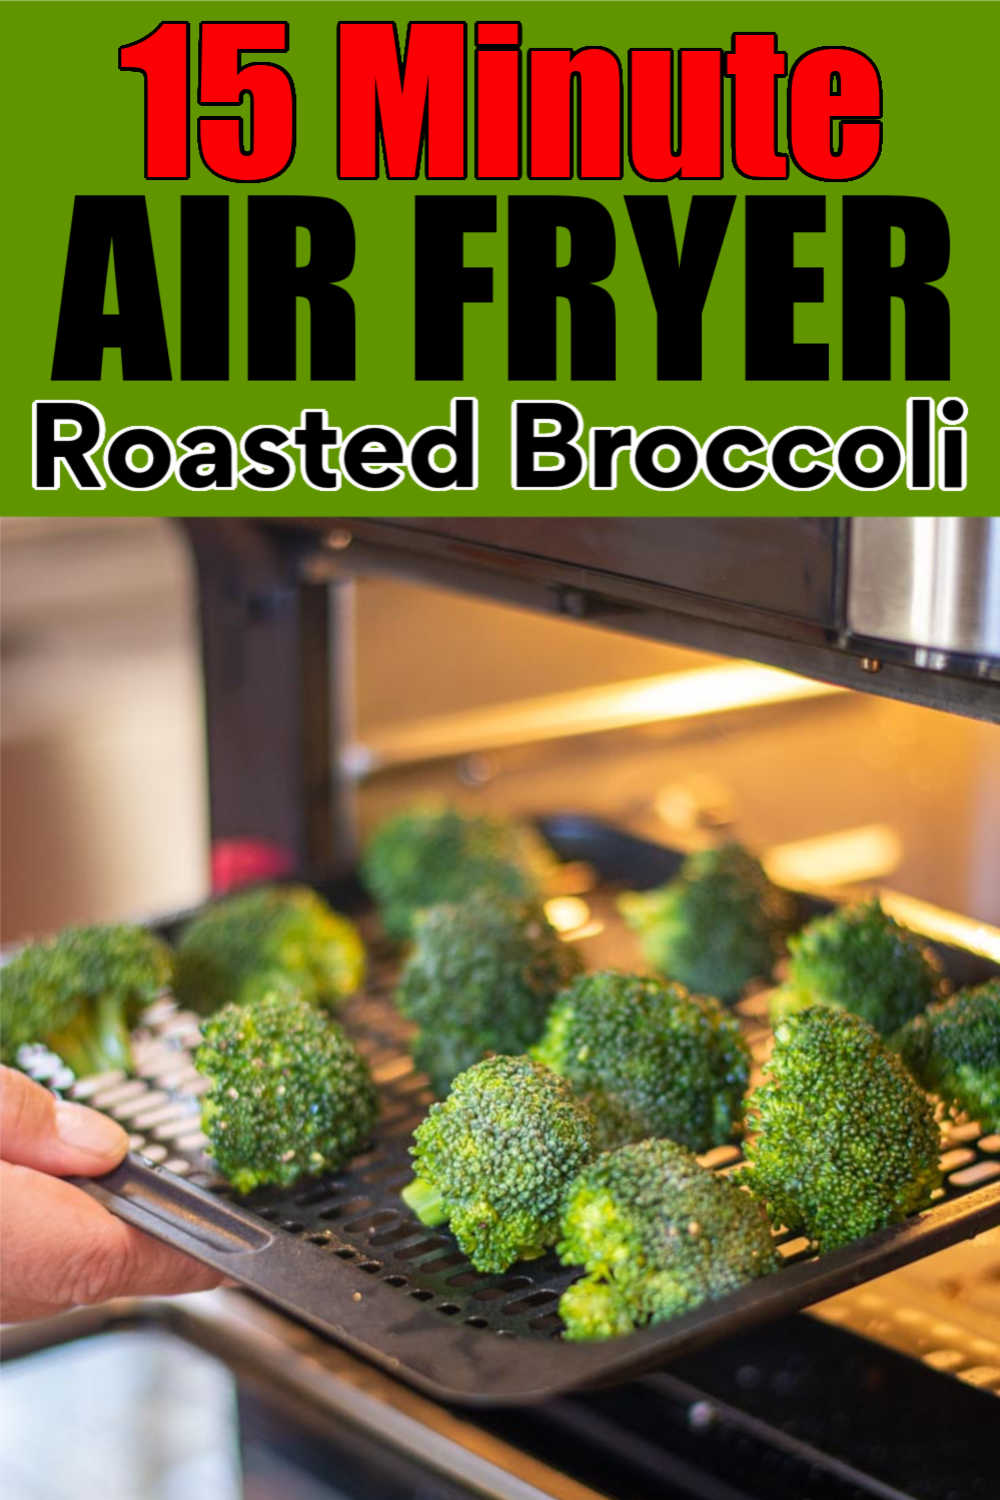 Air Fryer Roasted Broccoli {0 WW Points, Keto, Paleo, Vegan, Vegetarian, Whole30, Gluten Free}